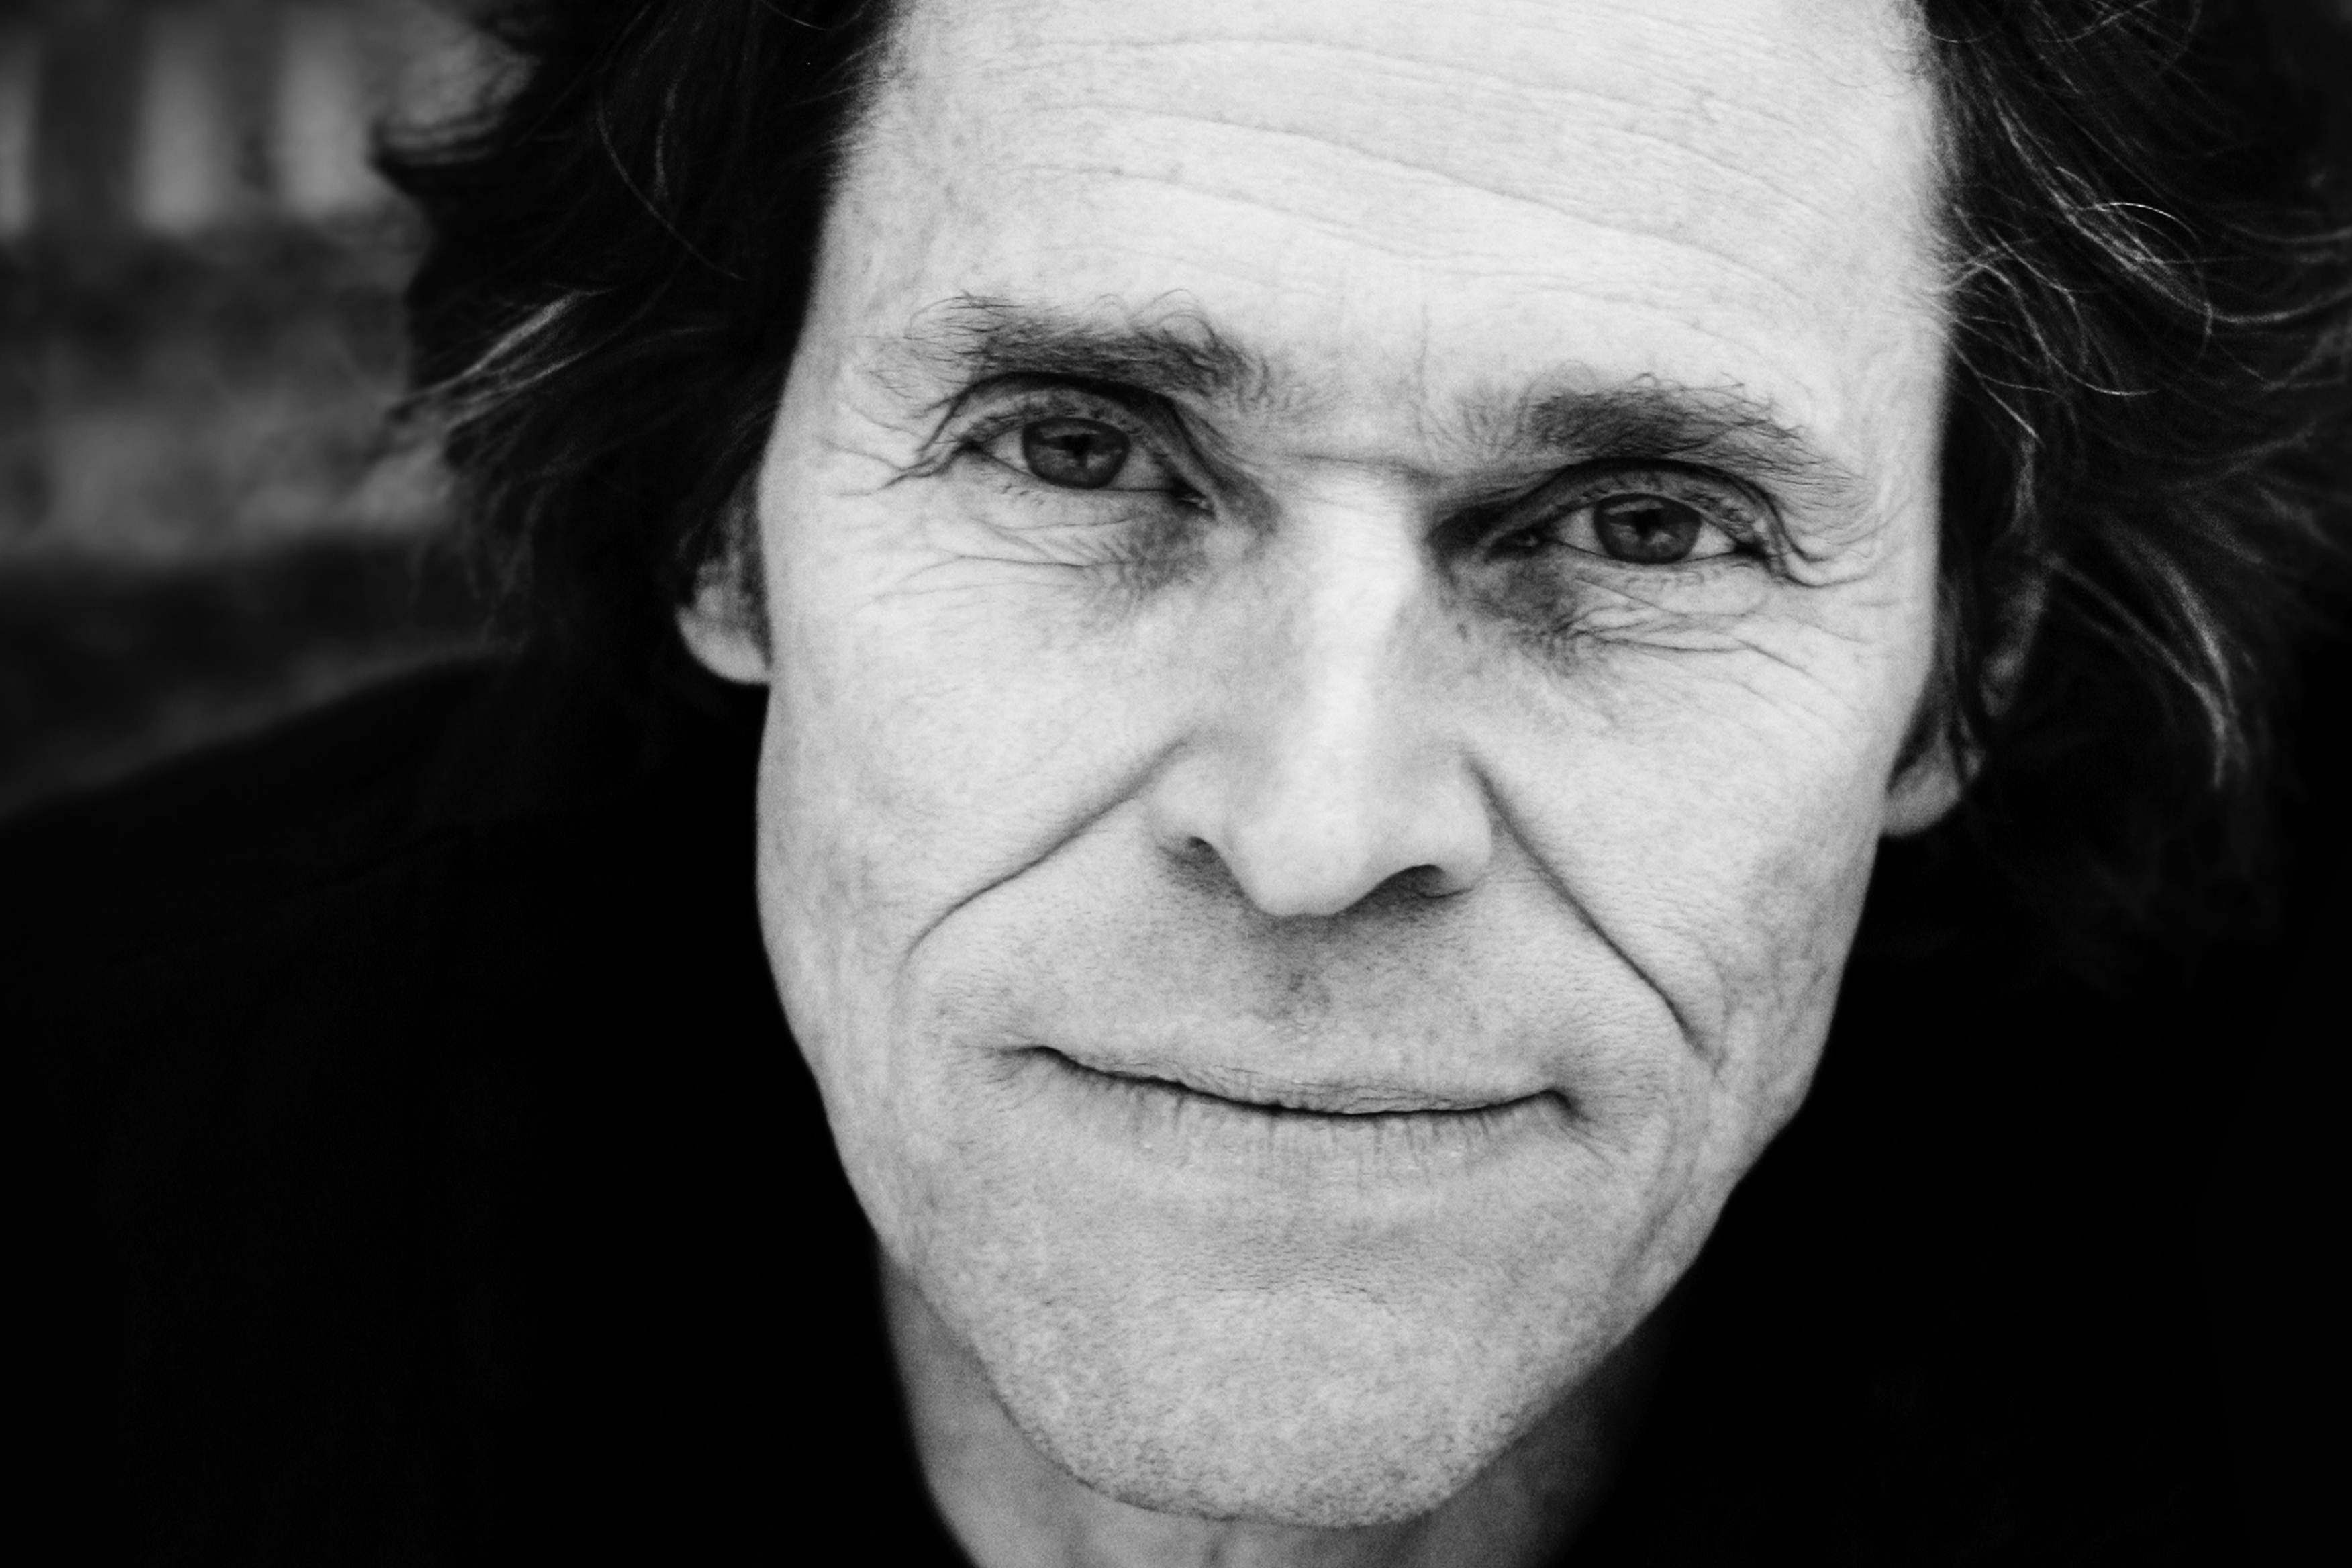 American actor Willem Dafoe